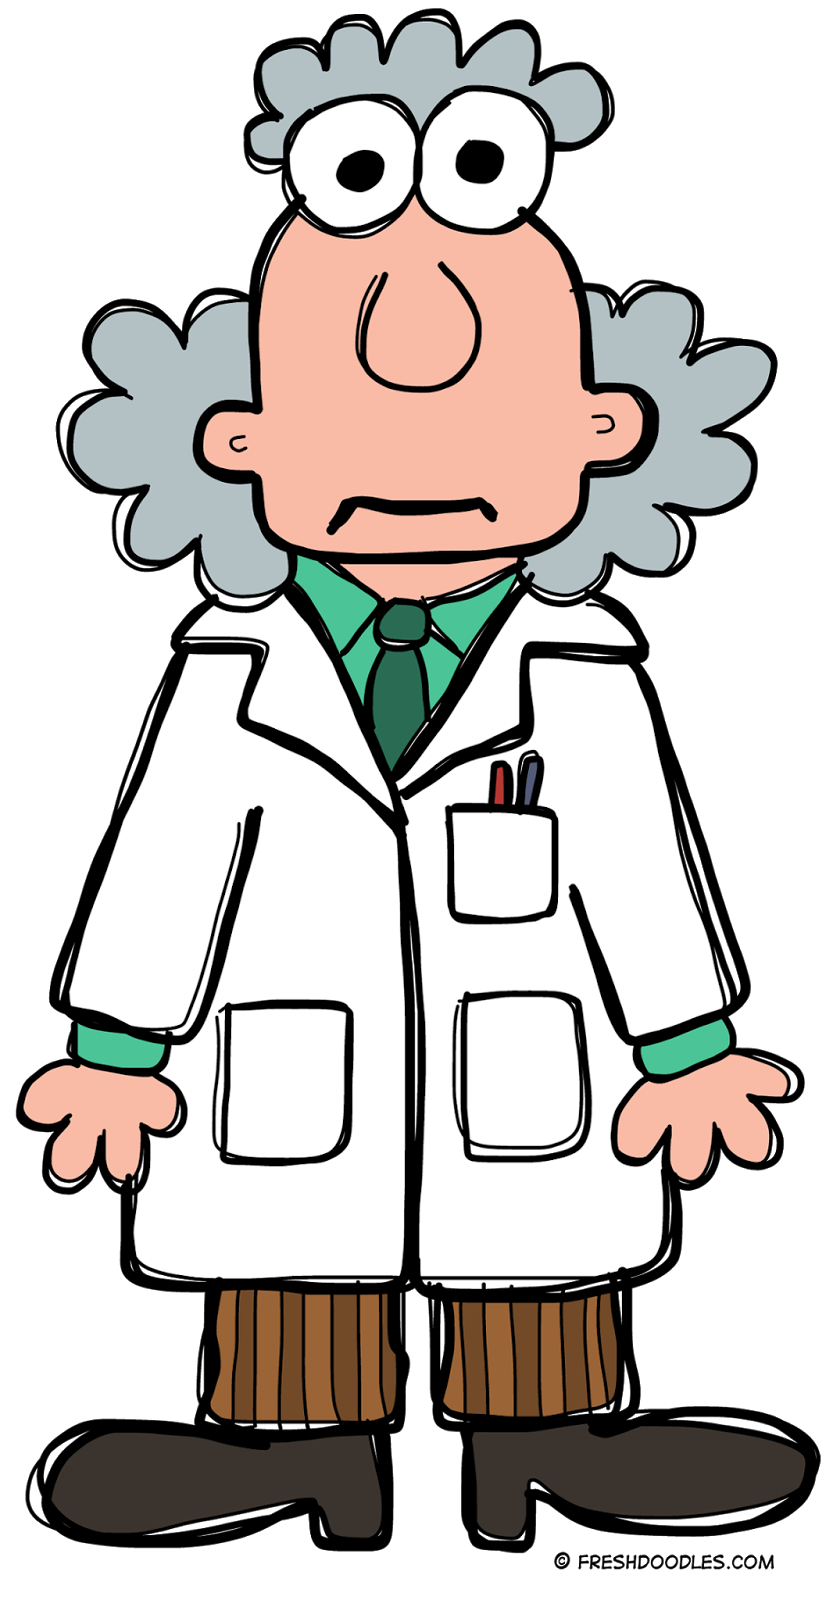 Scientist clipart. Panda free images info